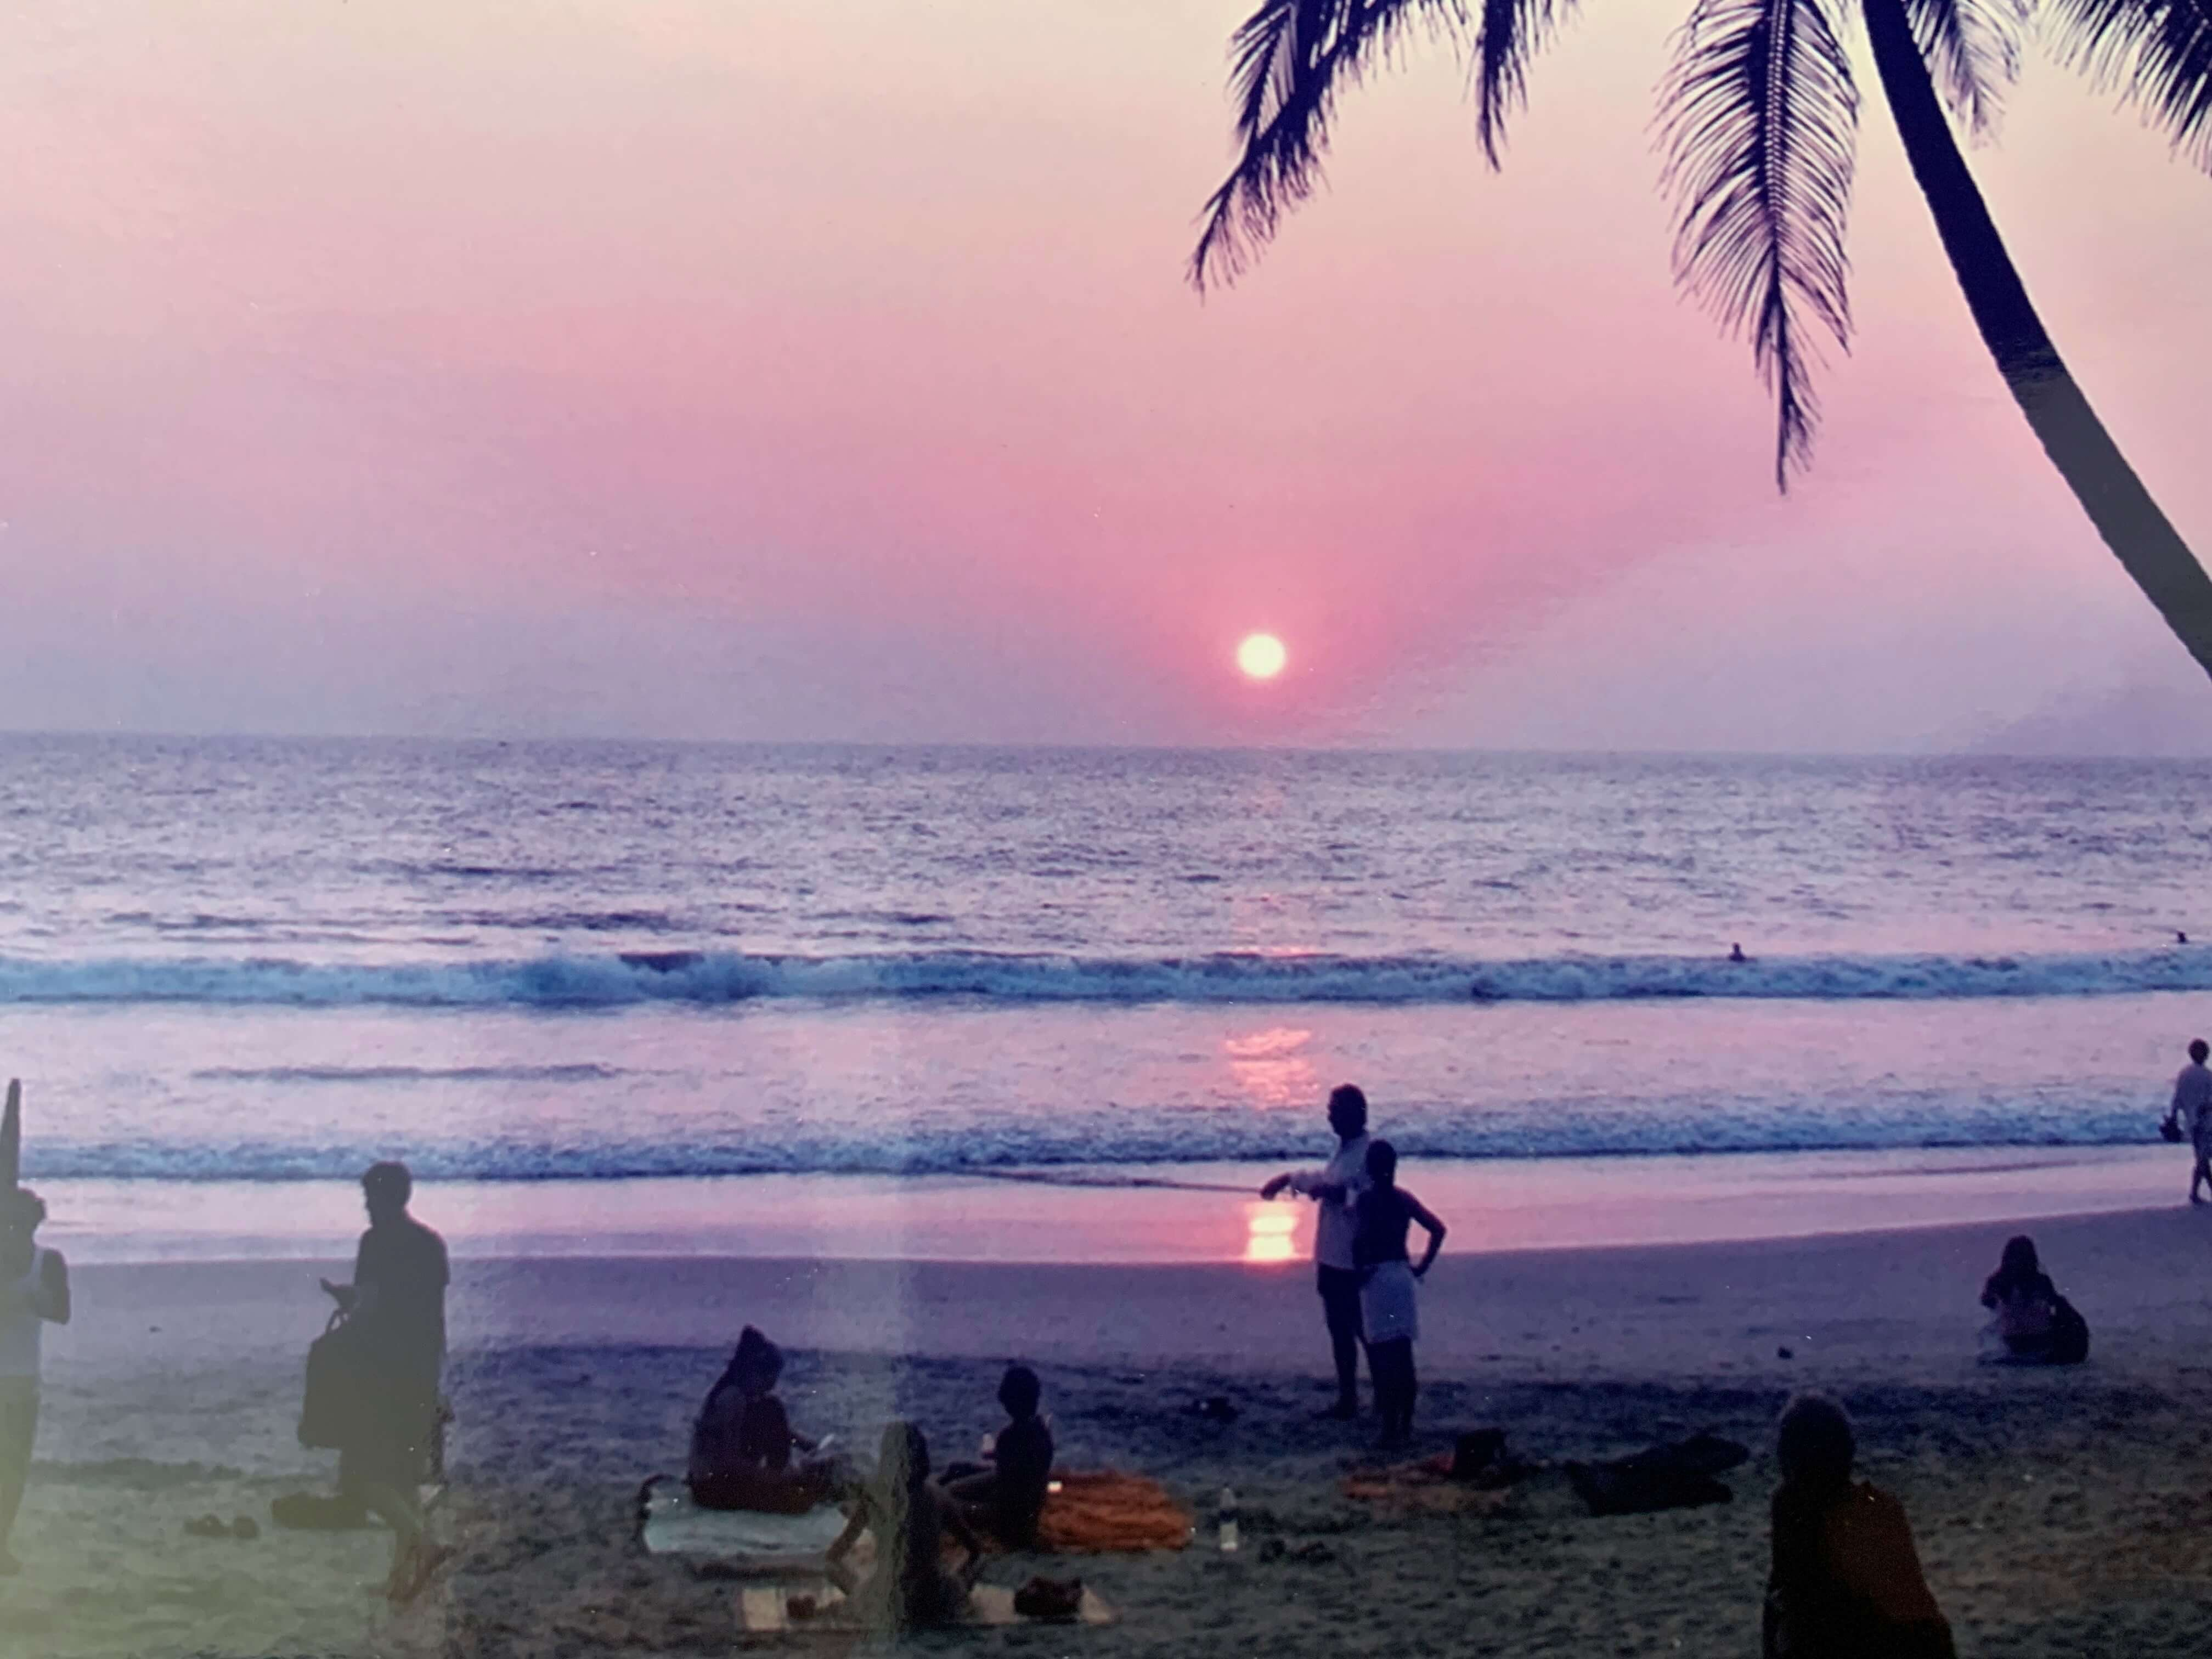 A Kerala sunset he will never forget.